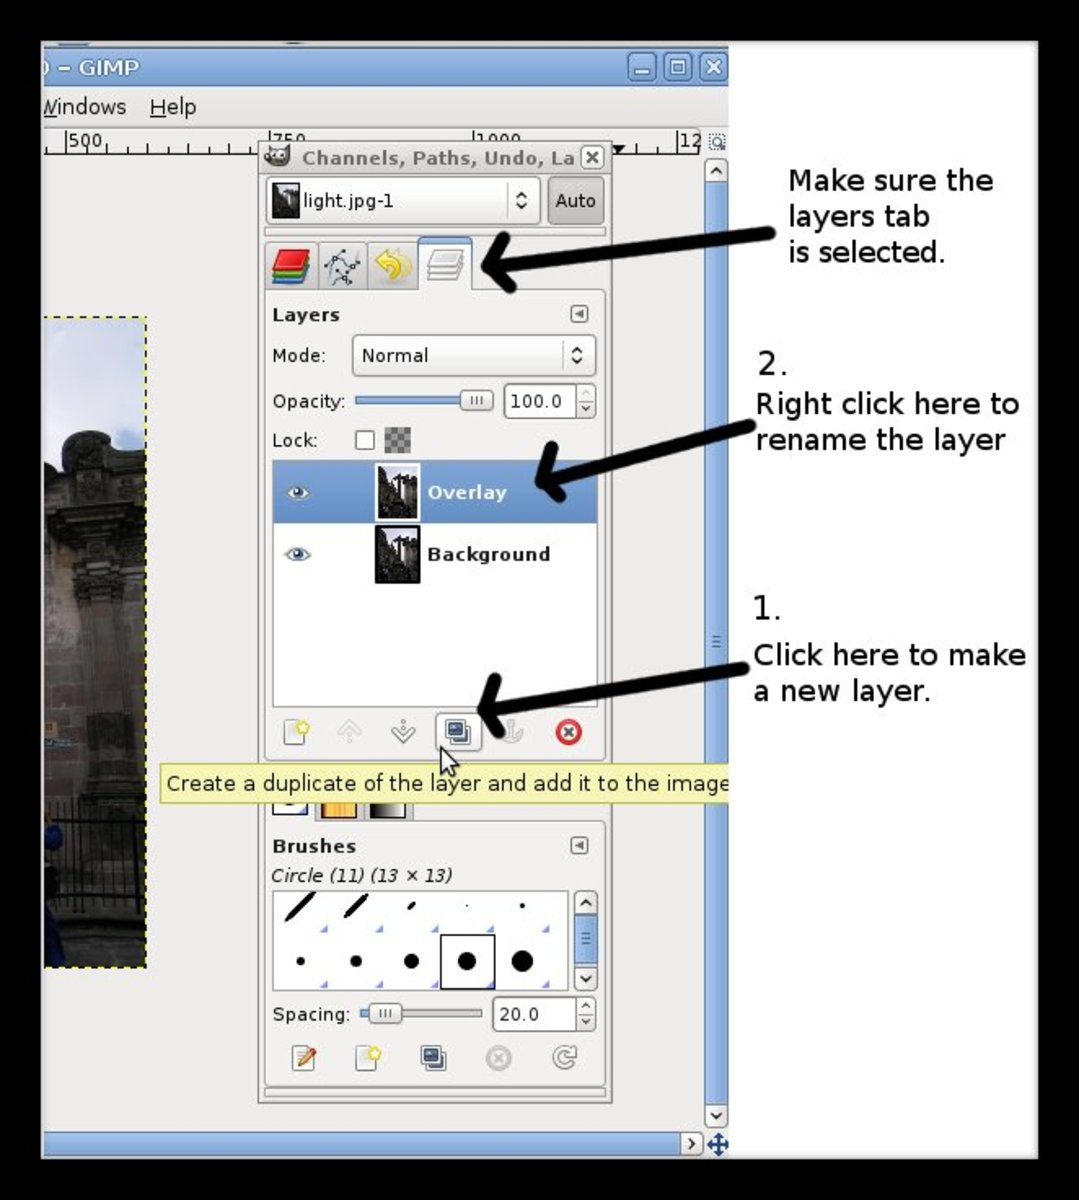 how-to-brighten-up-dark-photos-without-blowing-highlights-using-free-software